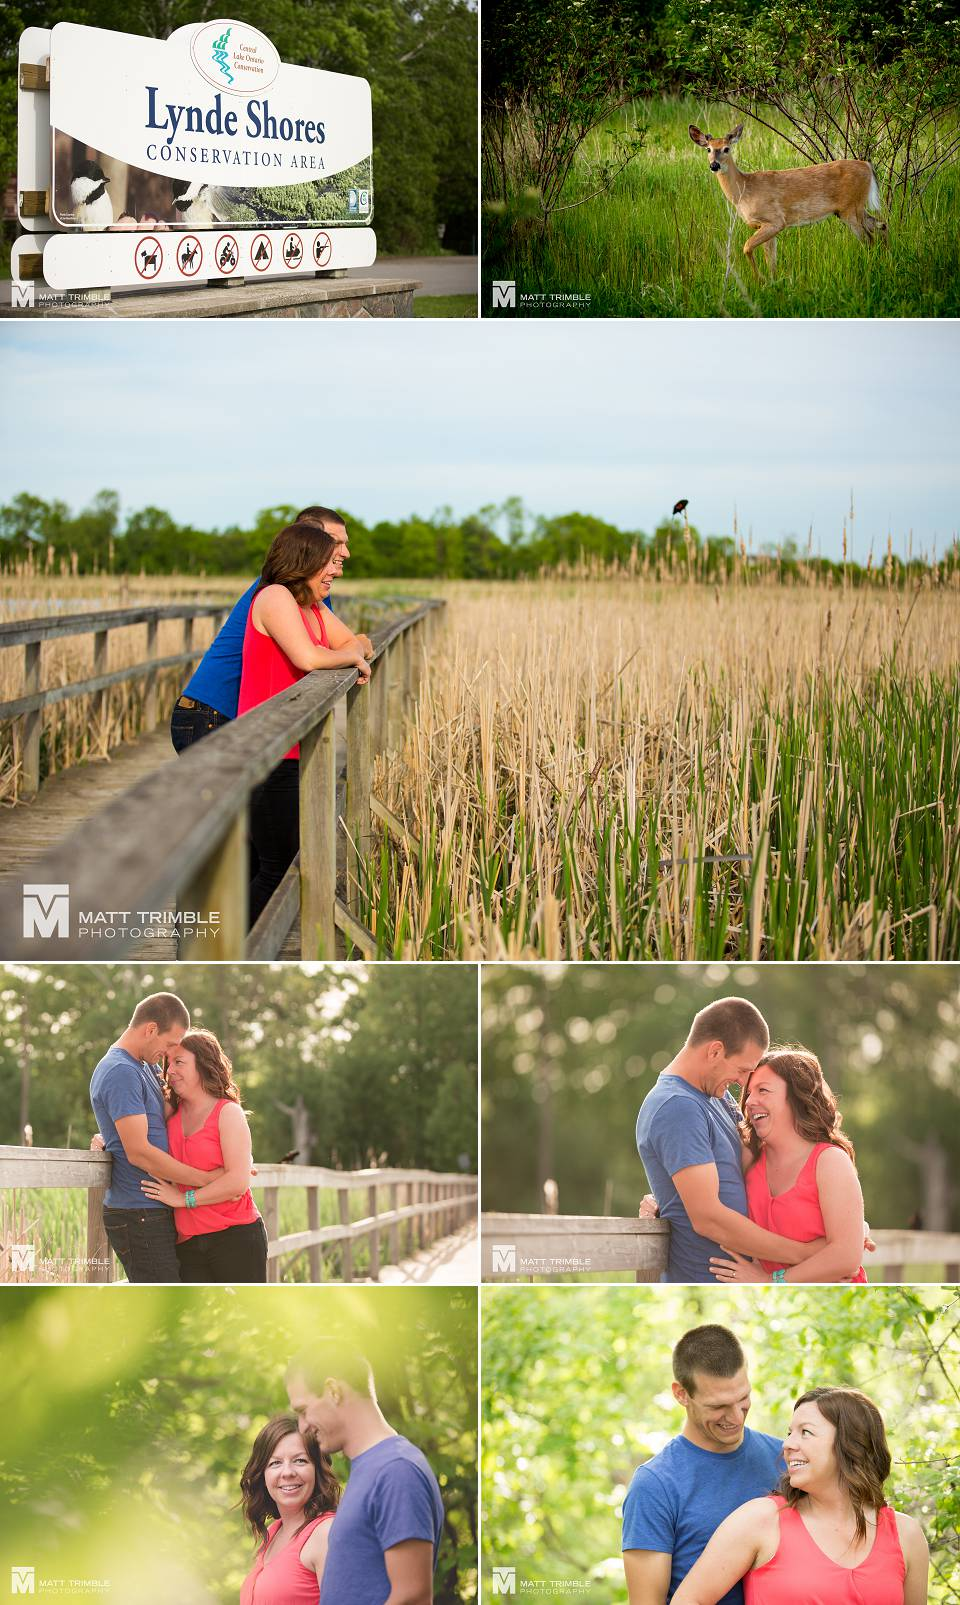 Lynde-shores engagement photography